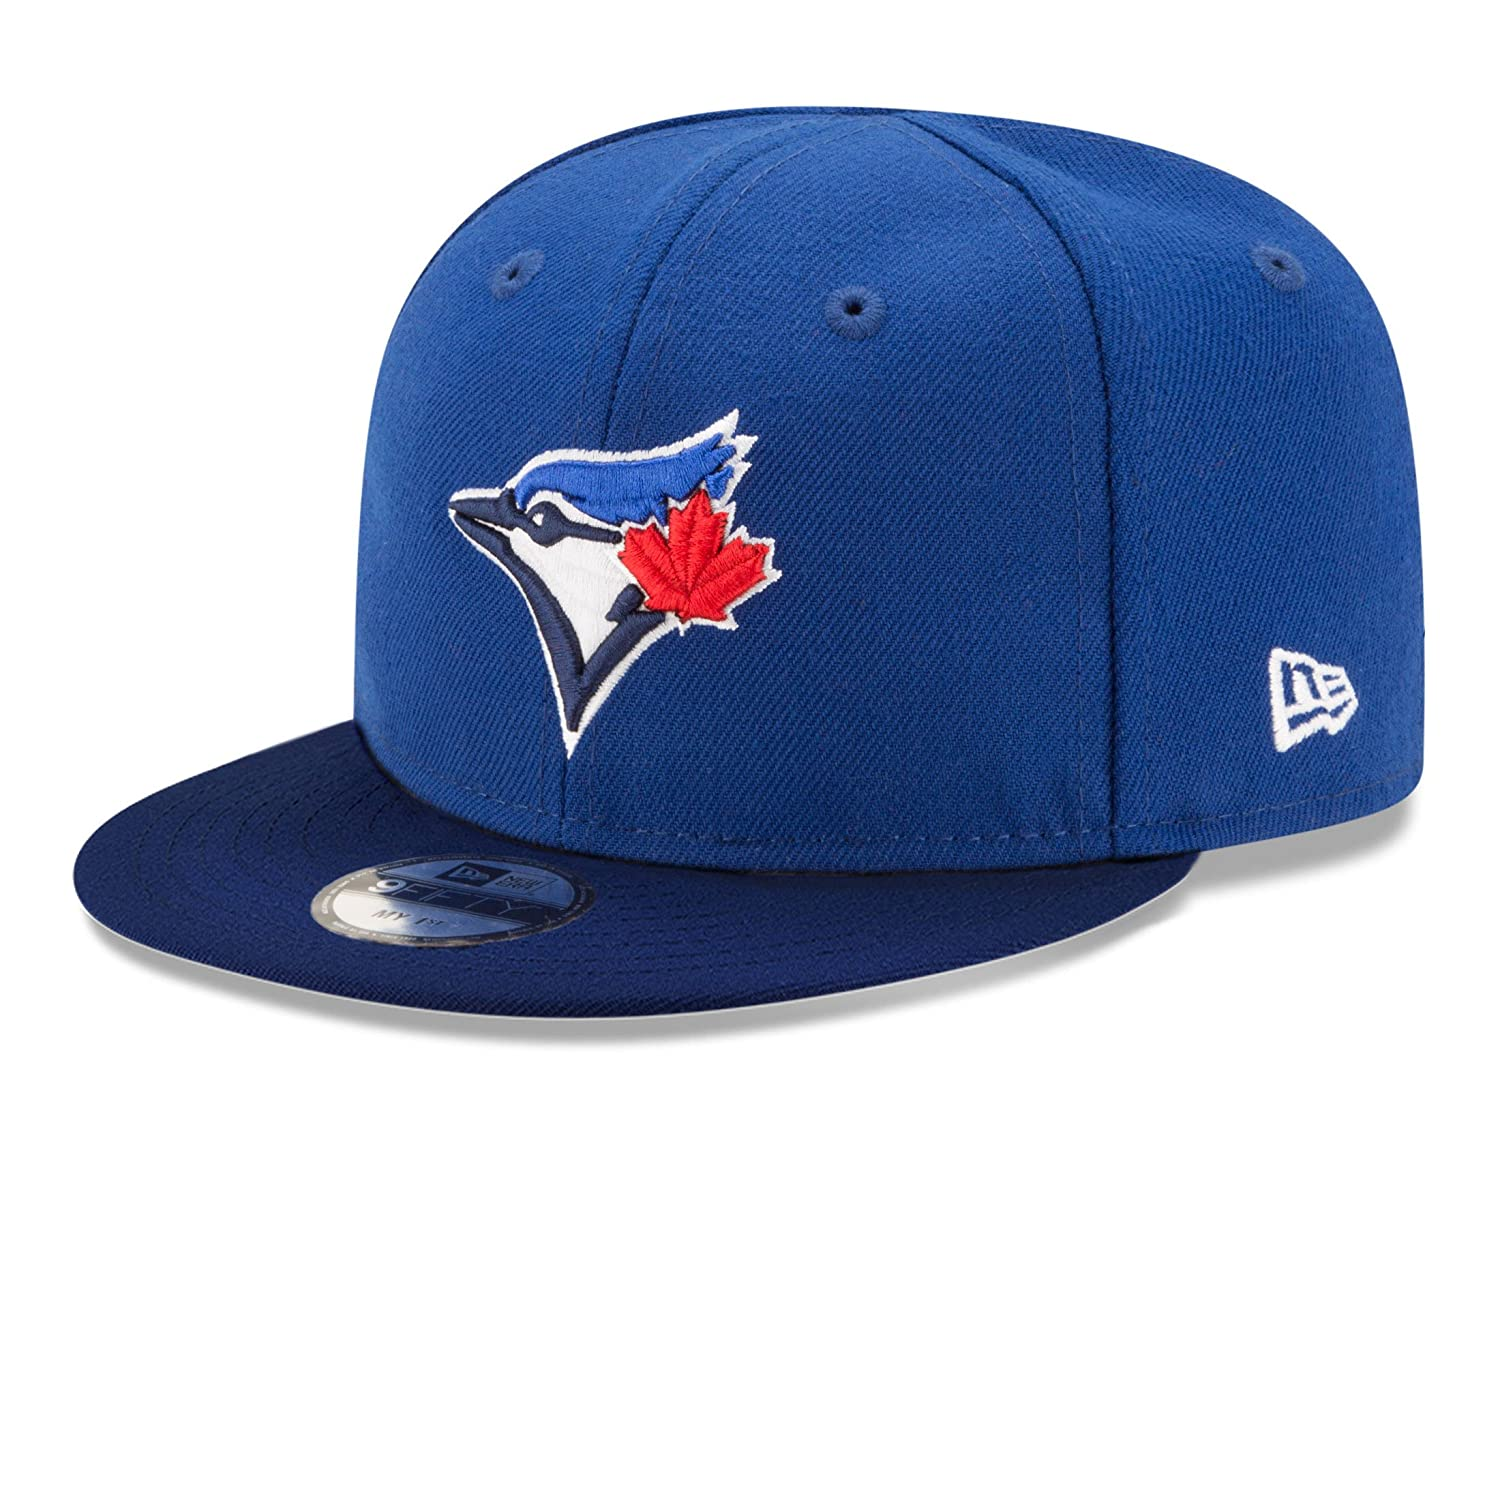 Toronto Blue Jays Infant My First 9FIFTY Adjustable Hat - Size One Size New Era